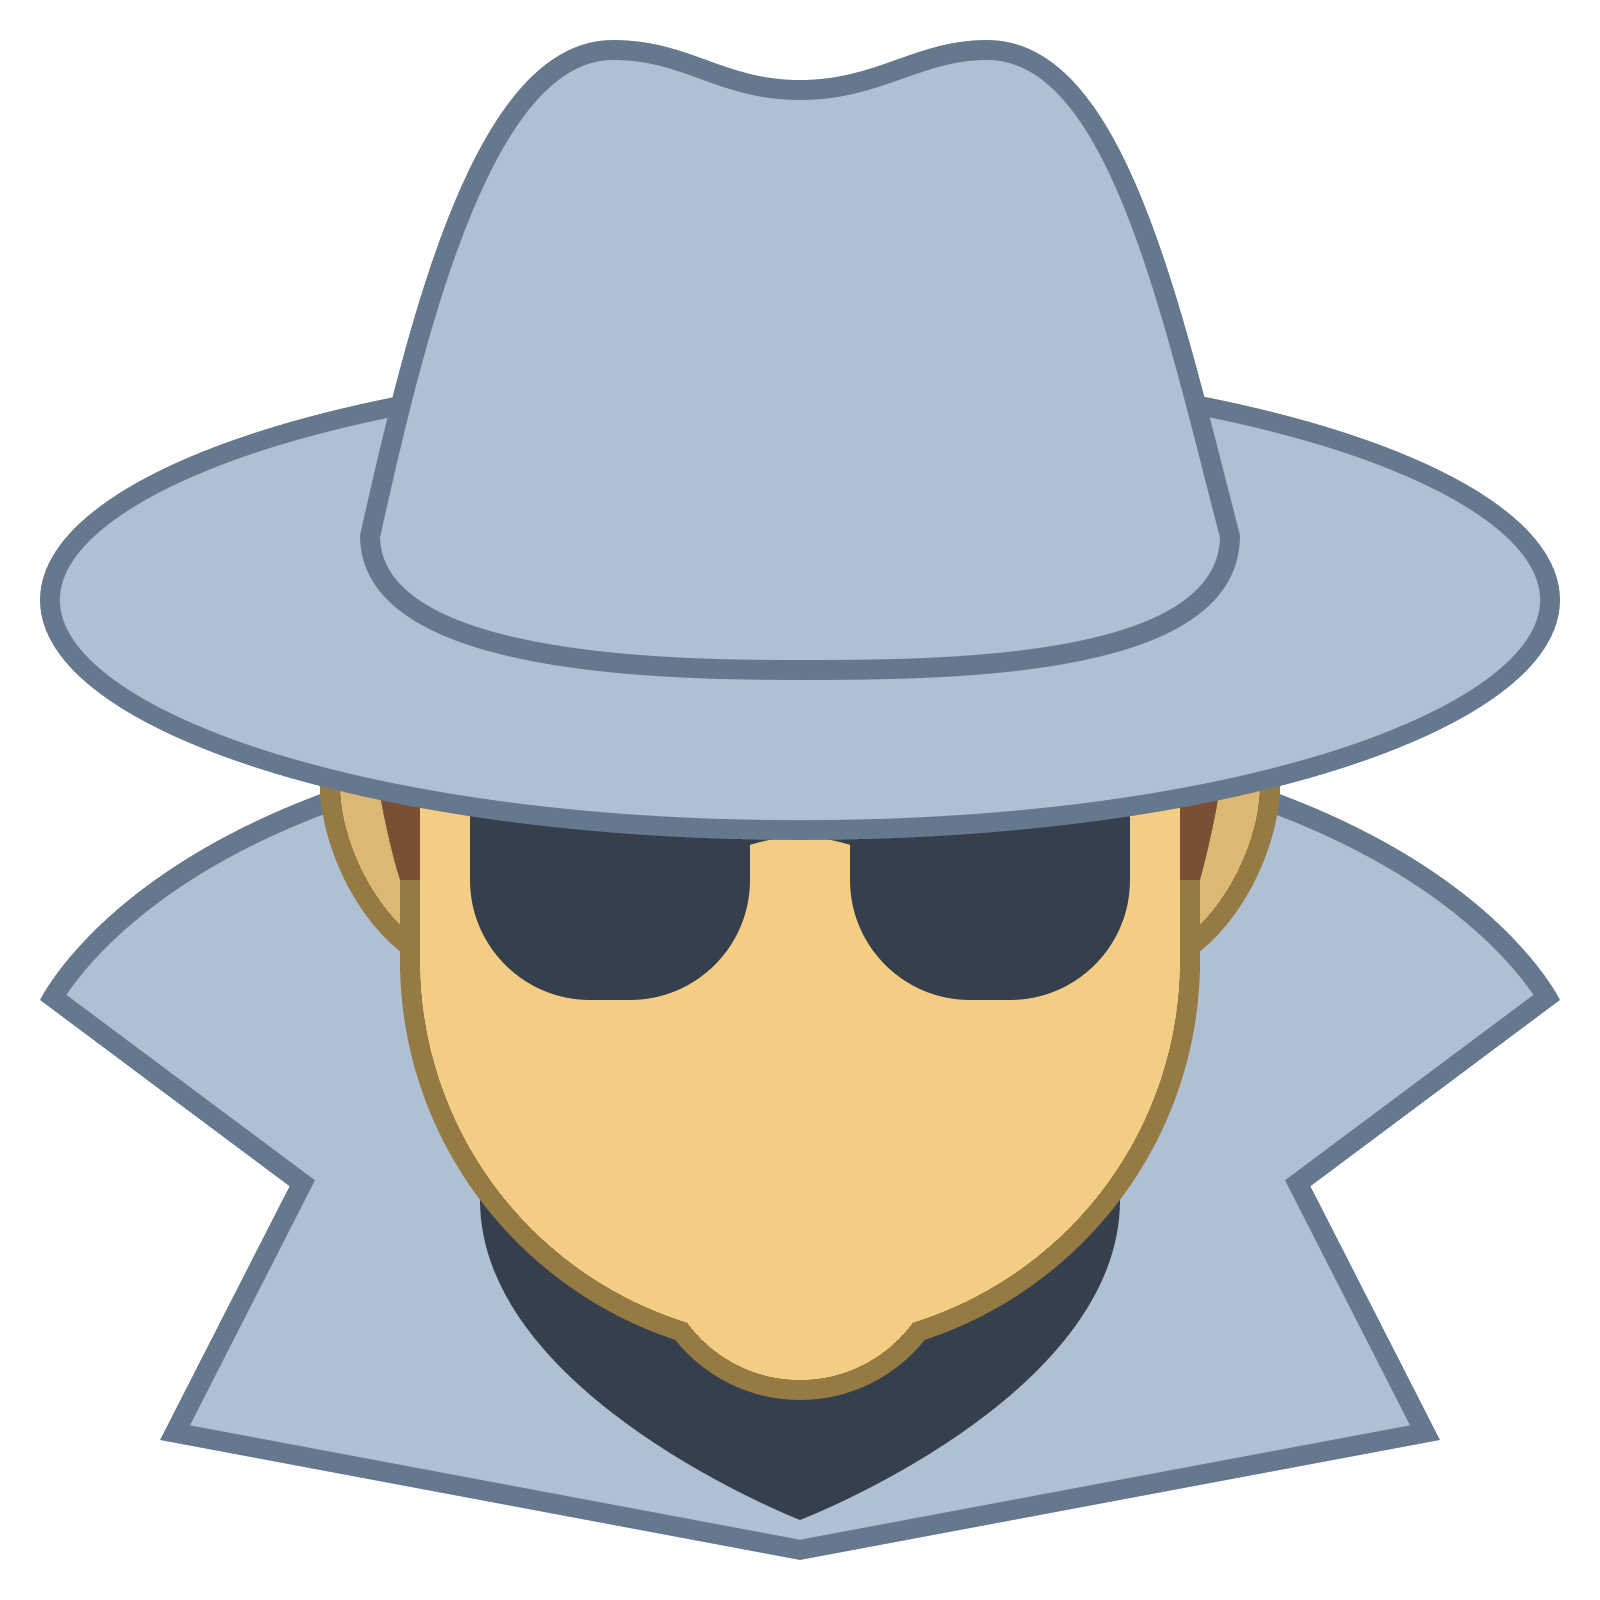 Hacker vector spy. Free icon download on